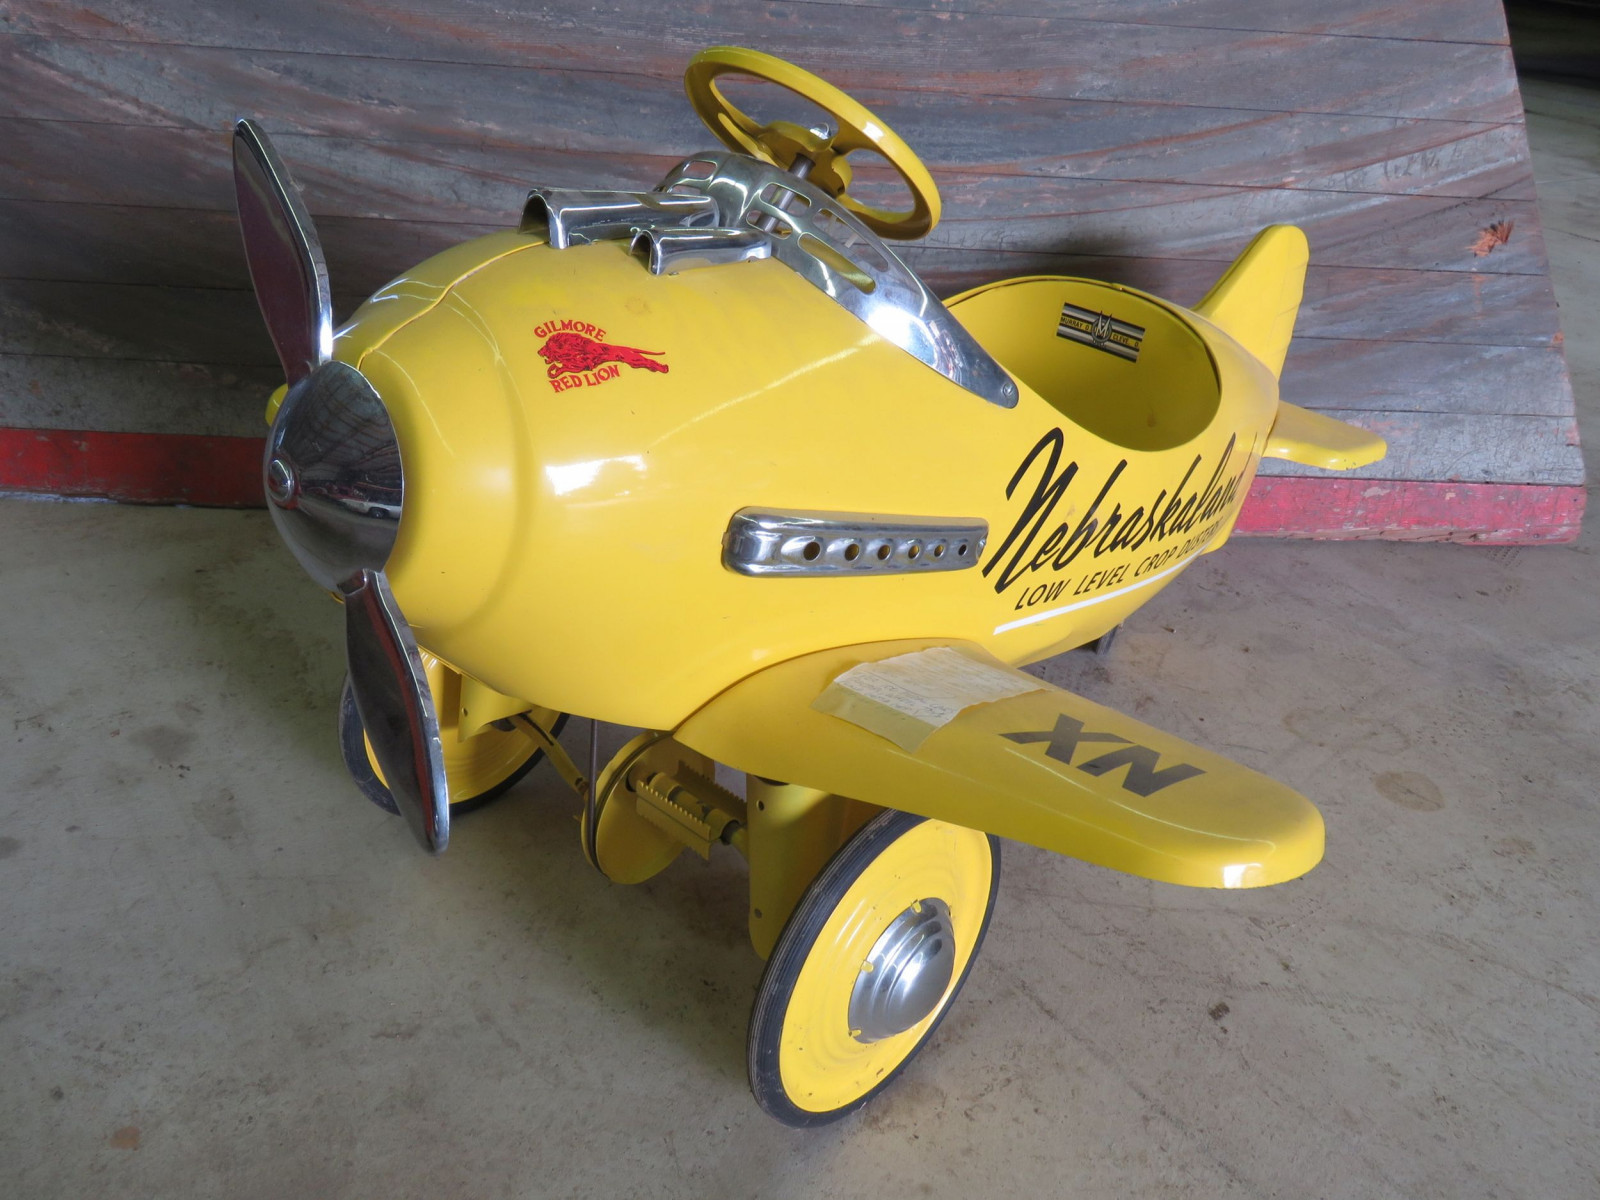 Reproduction Airplane Pedal Car - Image 1